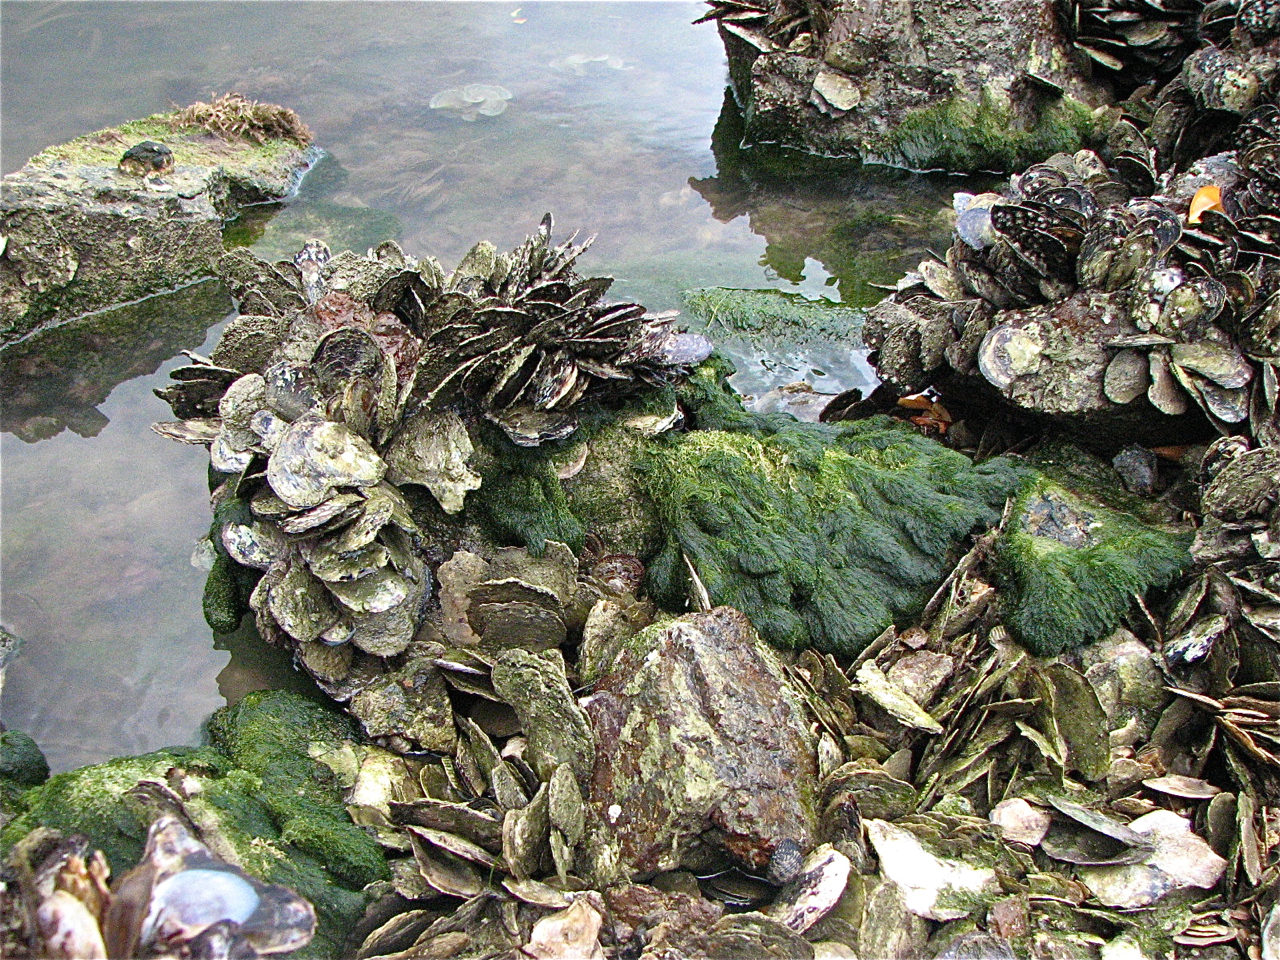 Attachment: Mangrove oysters at low tide.jpg